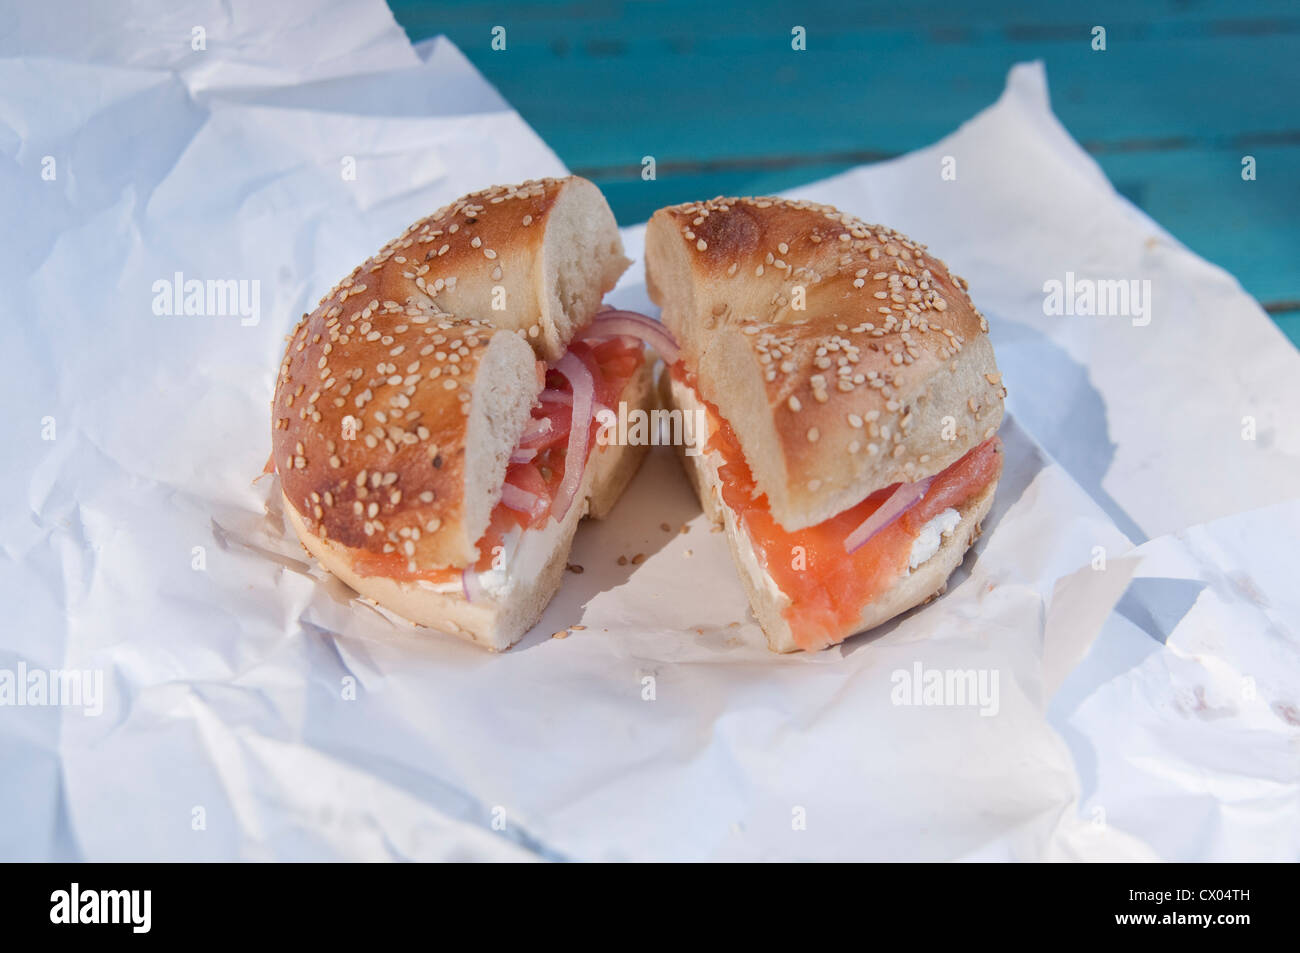 A sesame seed bagel with lox (smoked salmon), cream cheese, onion and tomato, sitting on a paper wrapper, from Spring - Stock Image